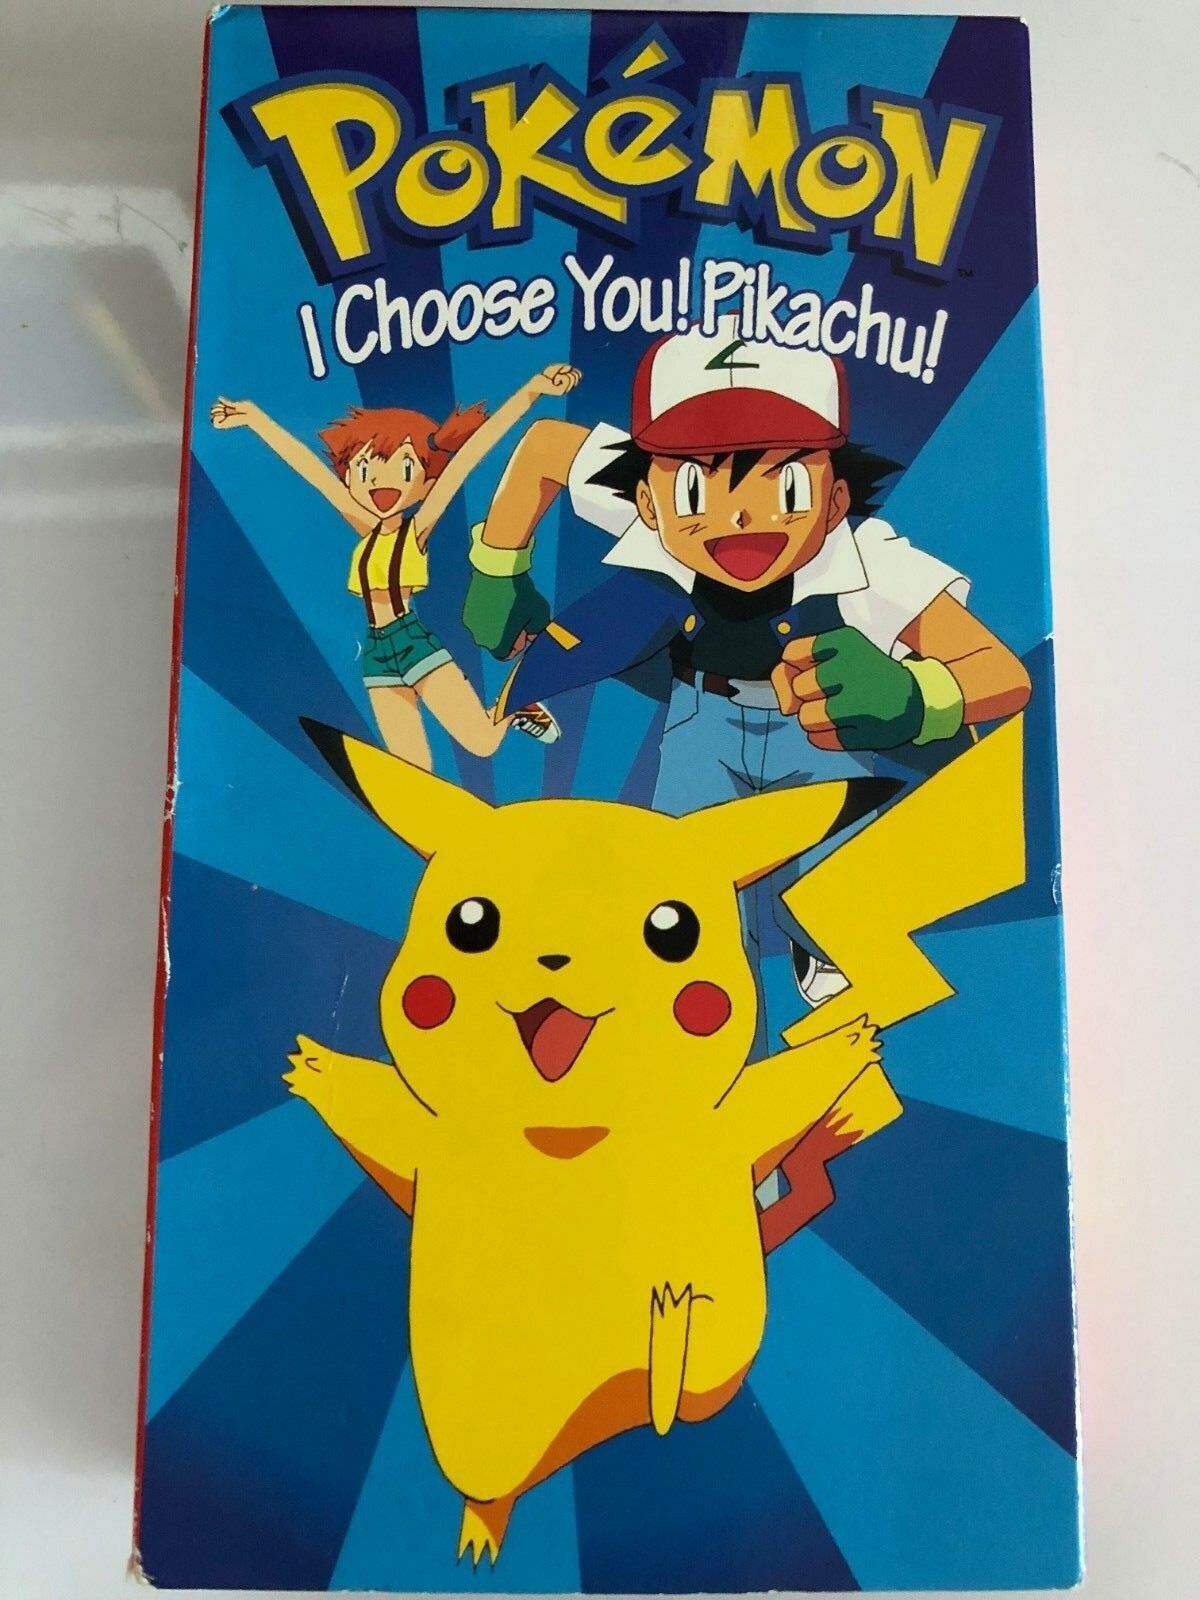 Pokemon I Choose You Pikachu! (1998 VHS)